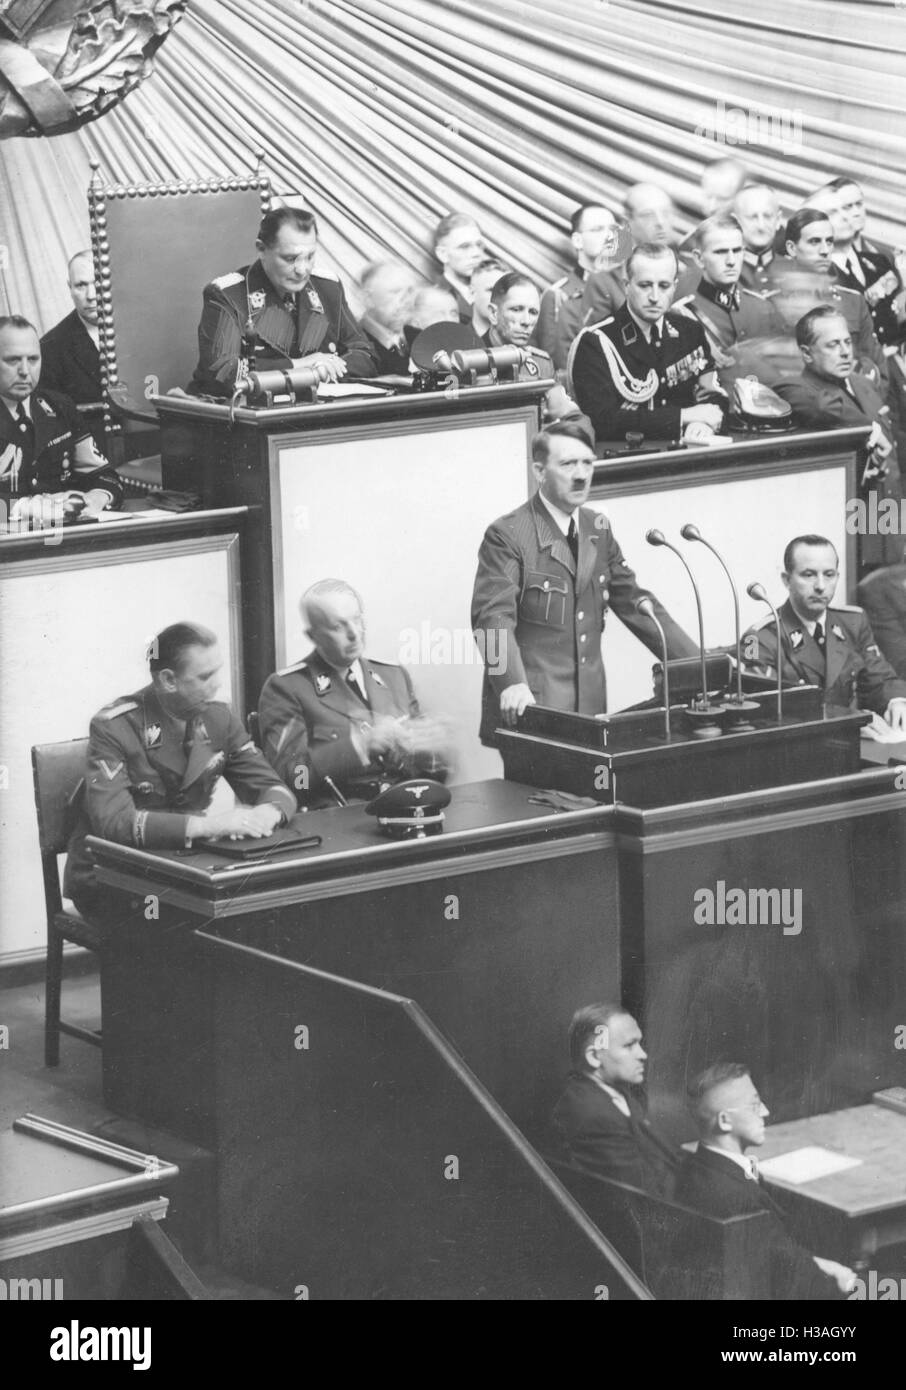 an analysis of the september 1 1939 speech by neville chamberlain to the house of commons We show that neville chamberlain grappled with a classic dilemma of  to adopt  cost-minimising strategies like appeasement (see table 1)  seats won in  house of commons (percentage of popular vote in  as late as the day after the  invasion of poland in september 1939, chamberlain's diary letters.